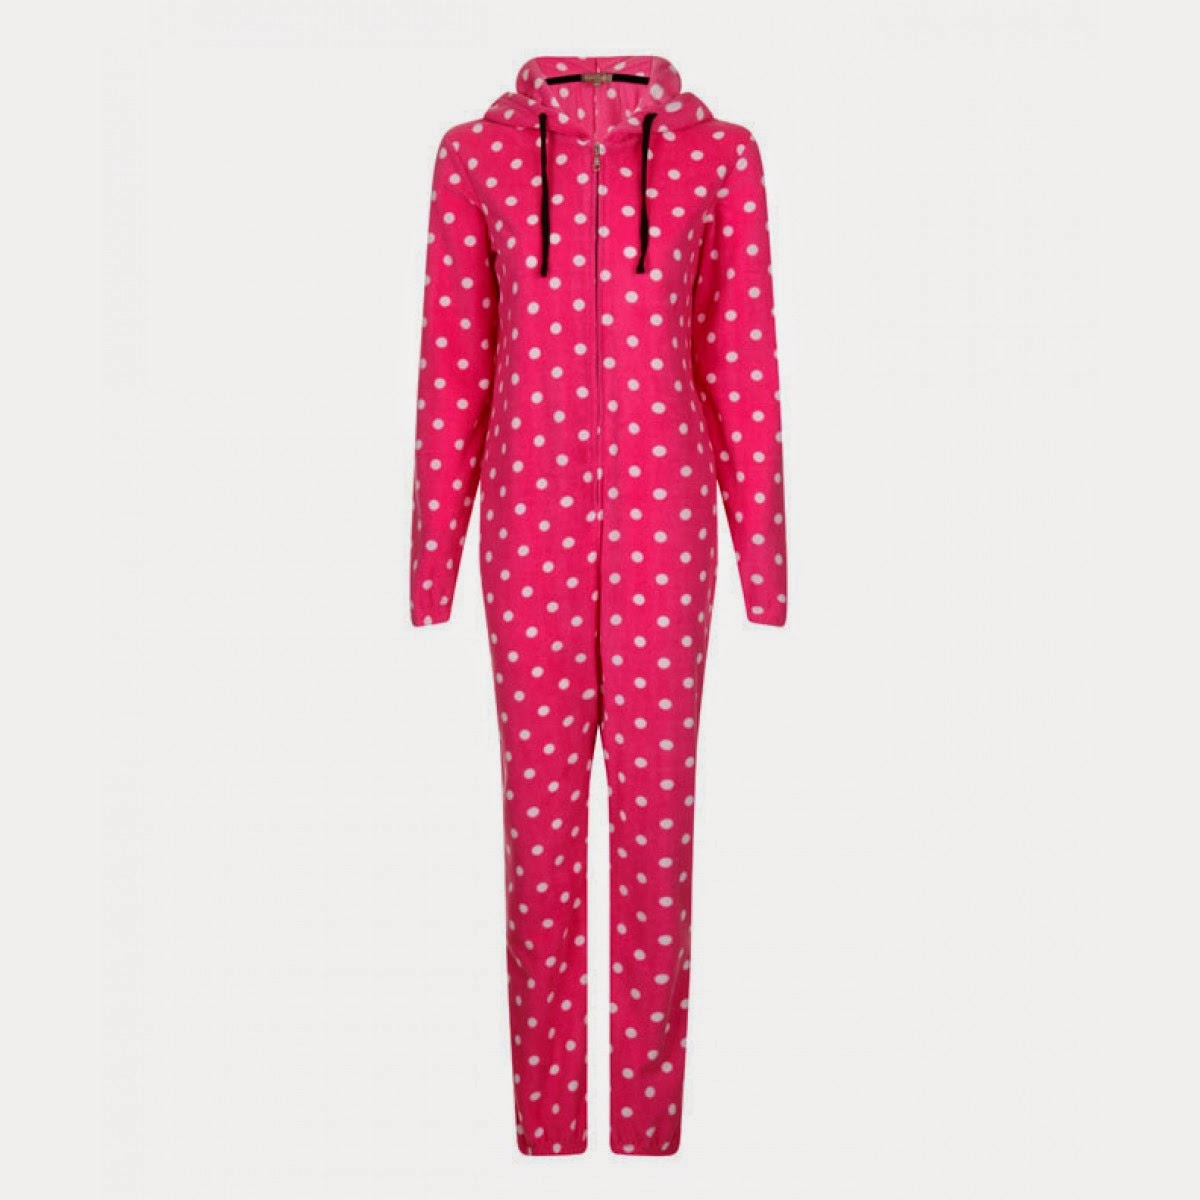 South Beach Official - Pink Polka Dot Onesie